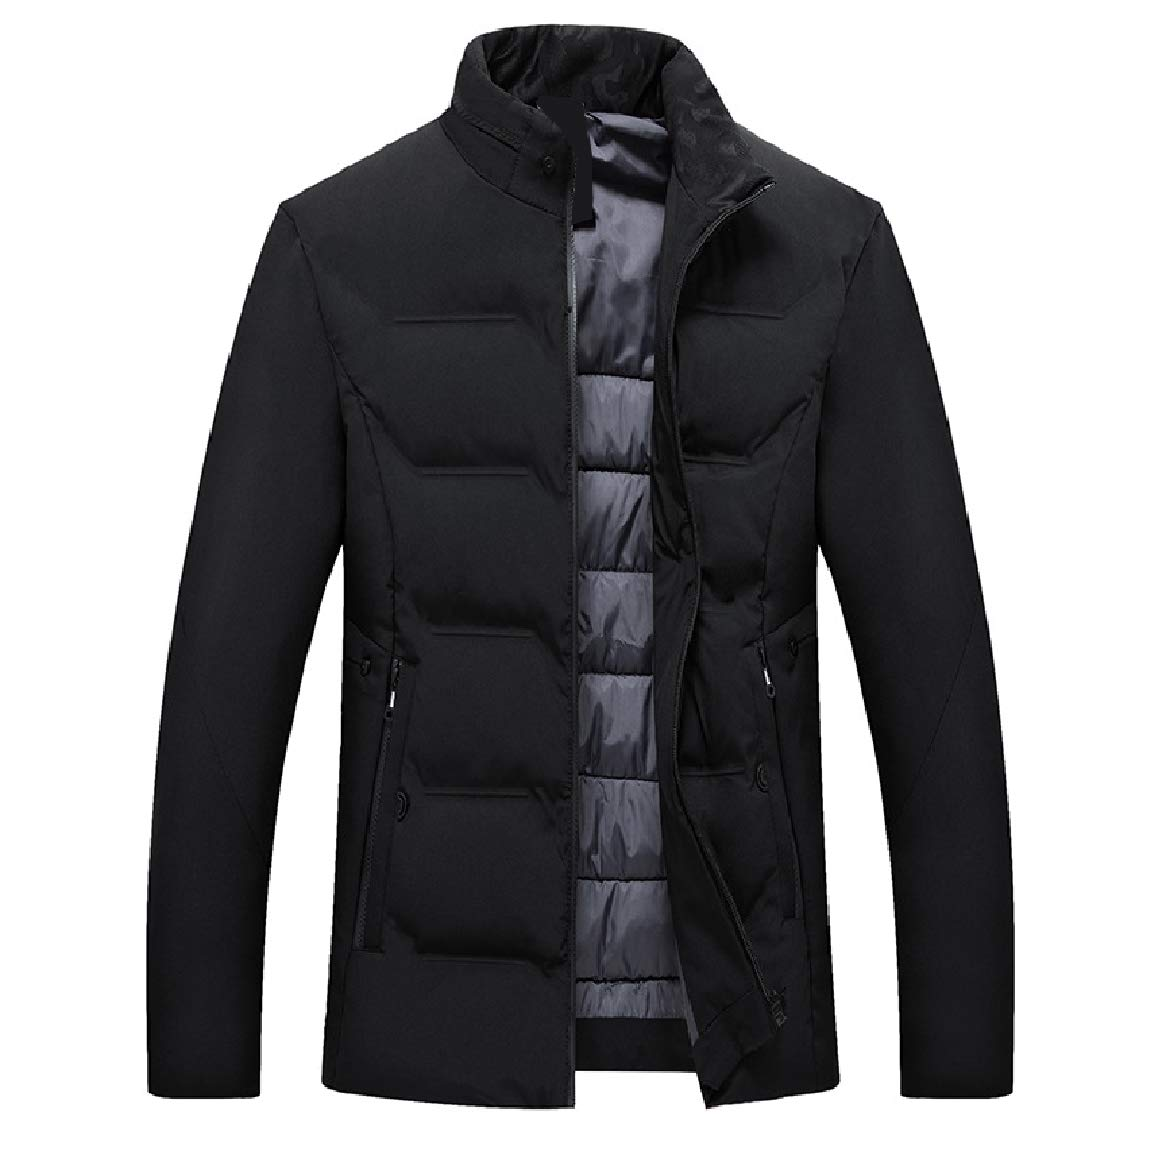 RingBong Mens Thick Business Winter Keep Warm Outwear Full-Zip Down Jacket